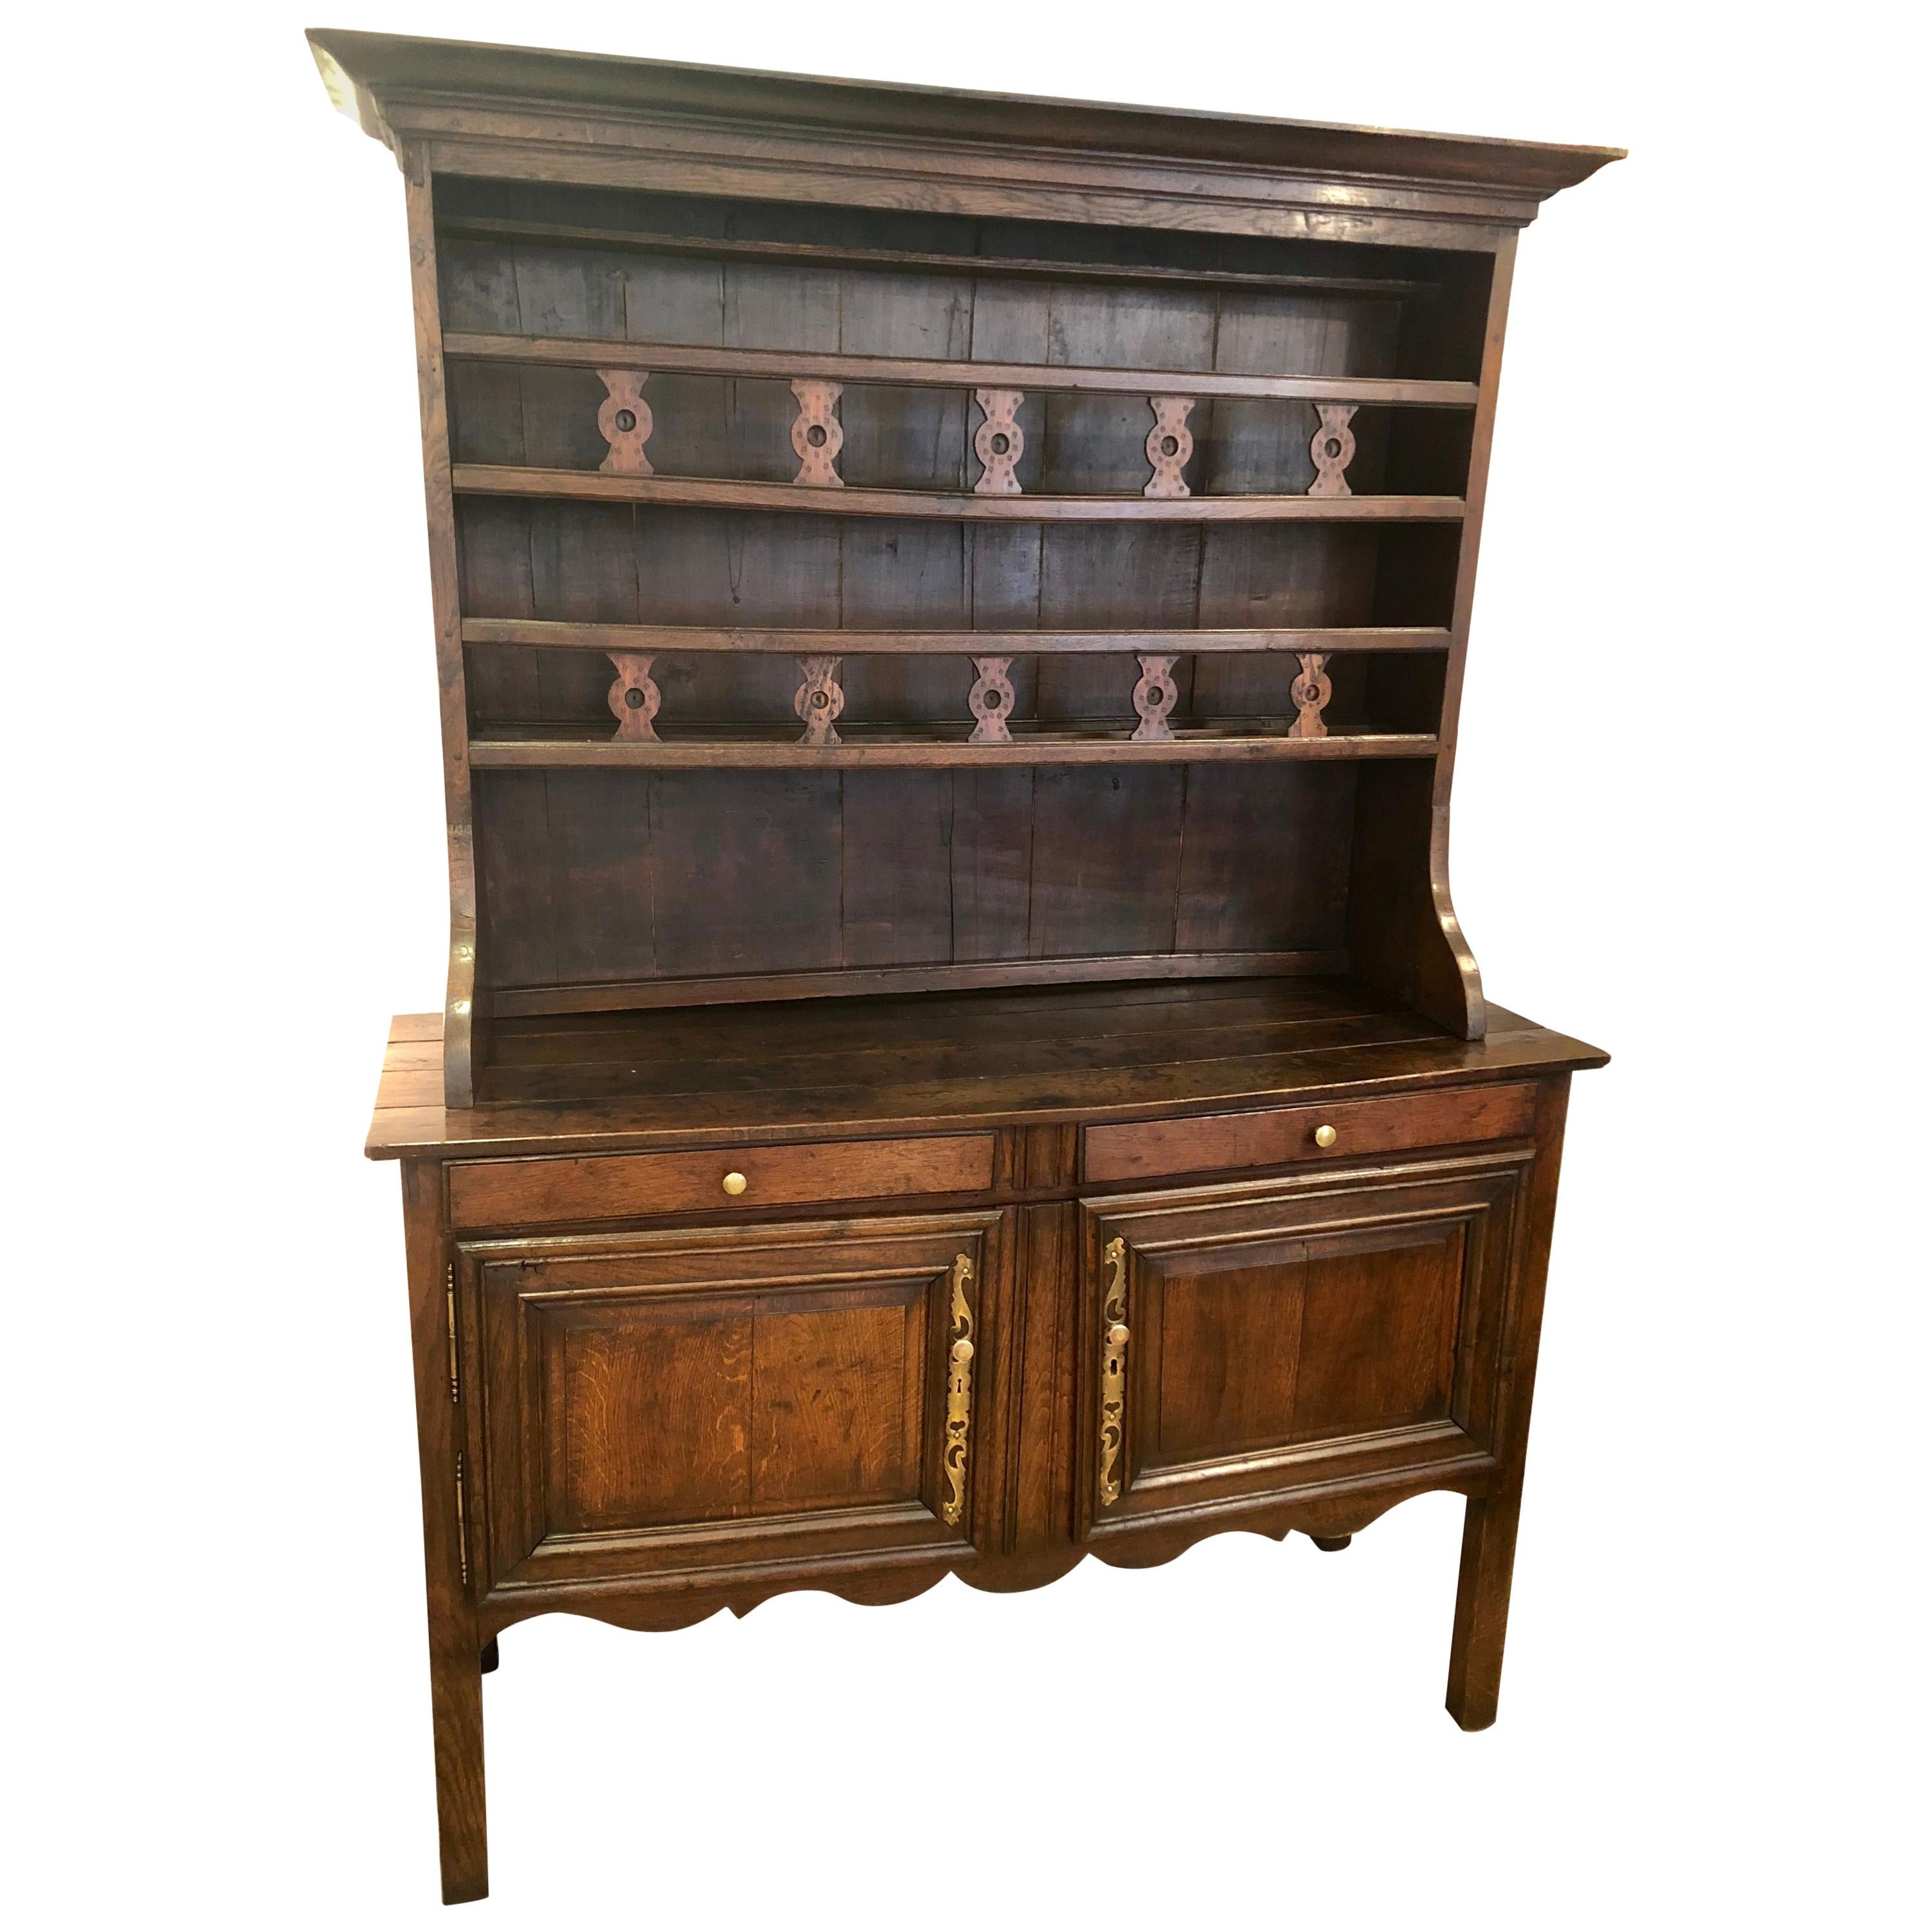 18th Century French Country Cupboard